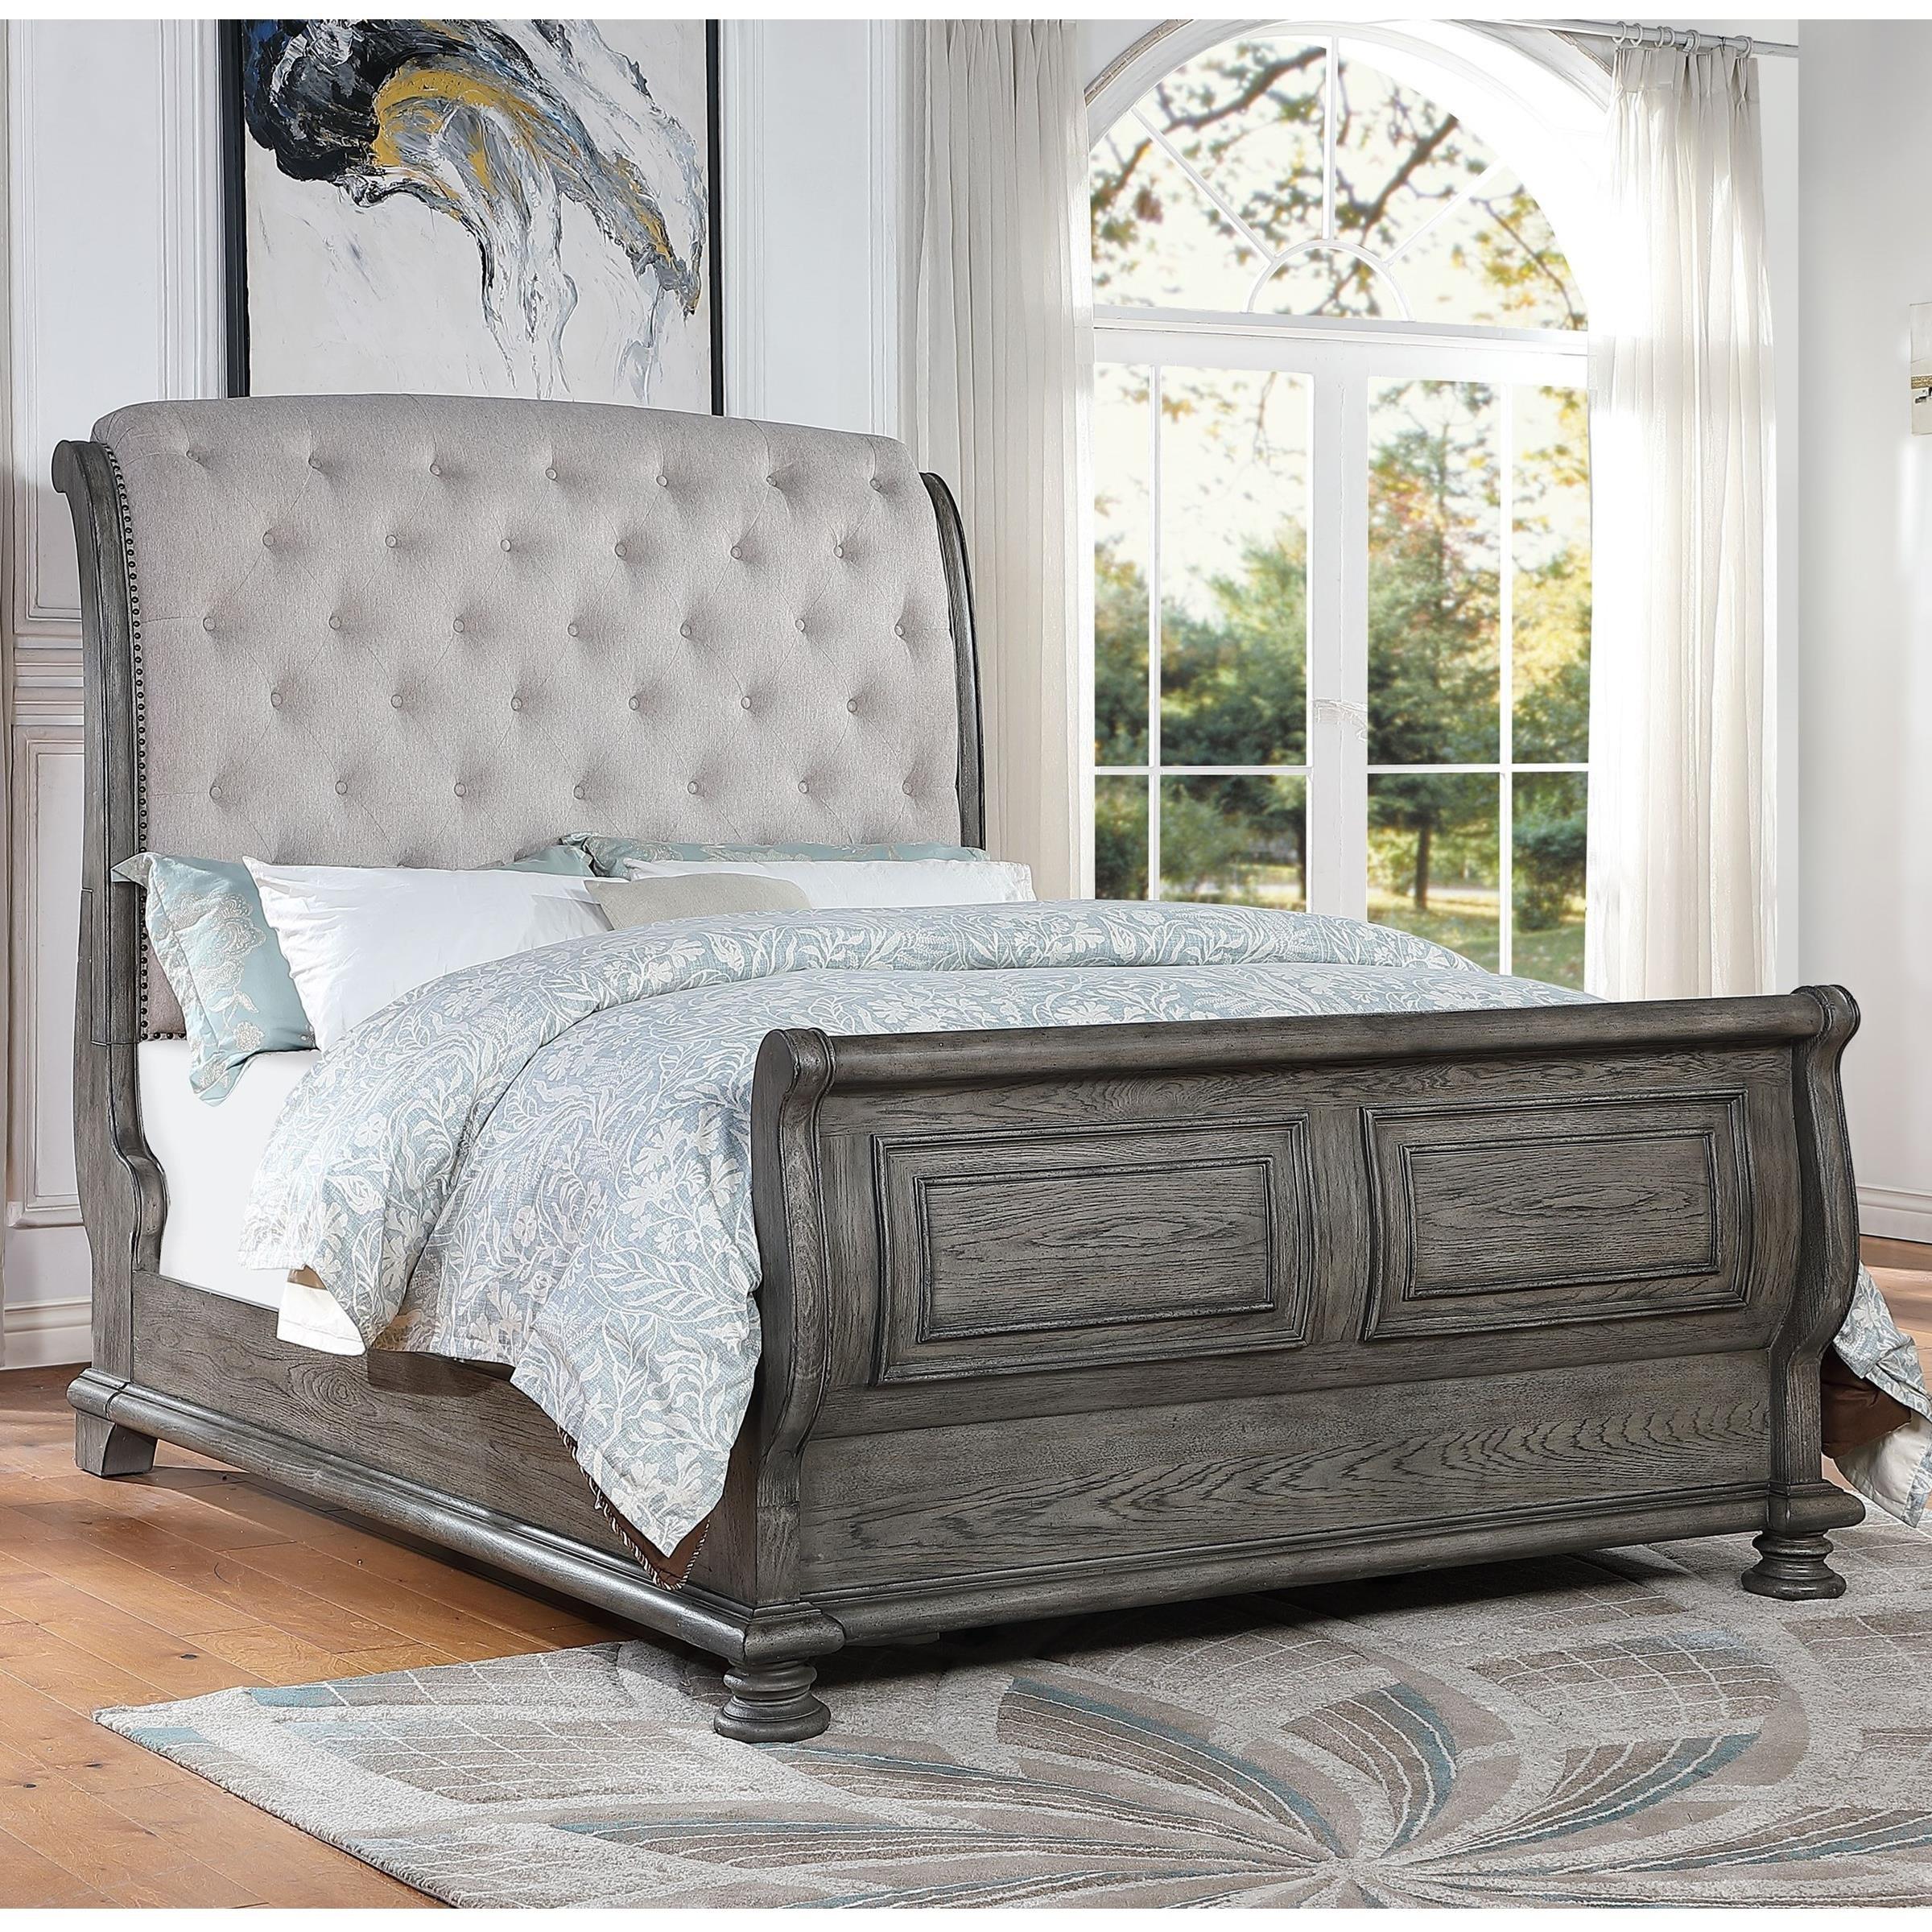 Avalon Furniture Lakeway King Upholstered Sleigh Bed With Tufted Headboard Story Lee Furniture Upholstered Beds